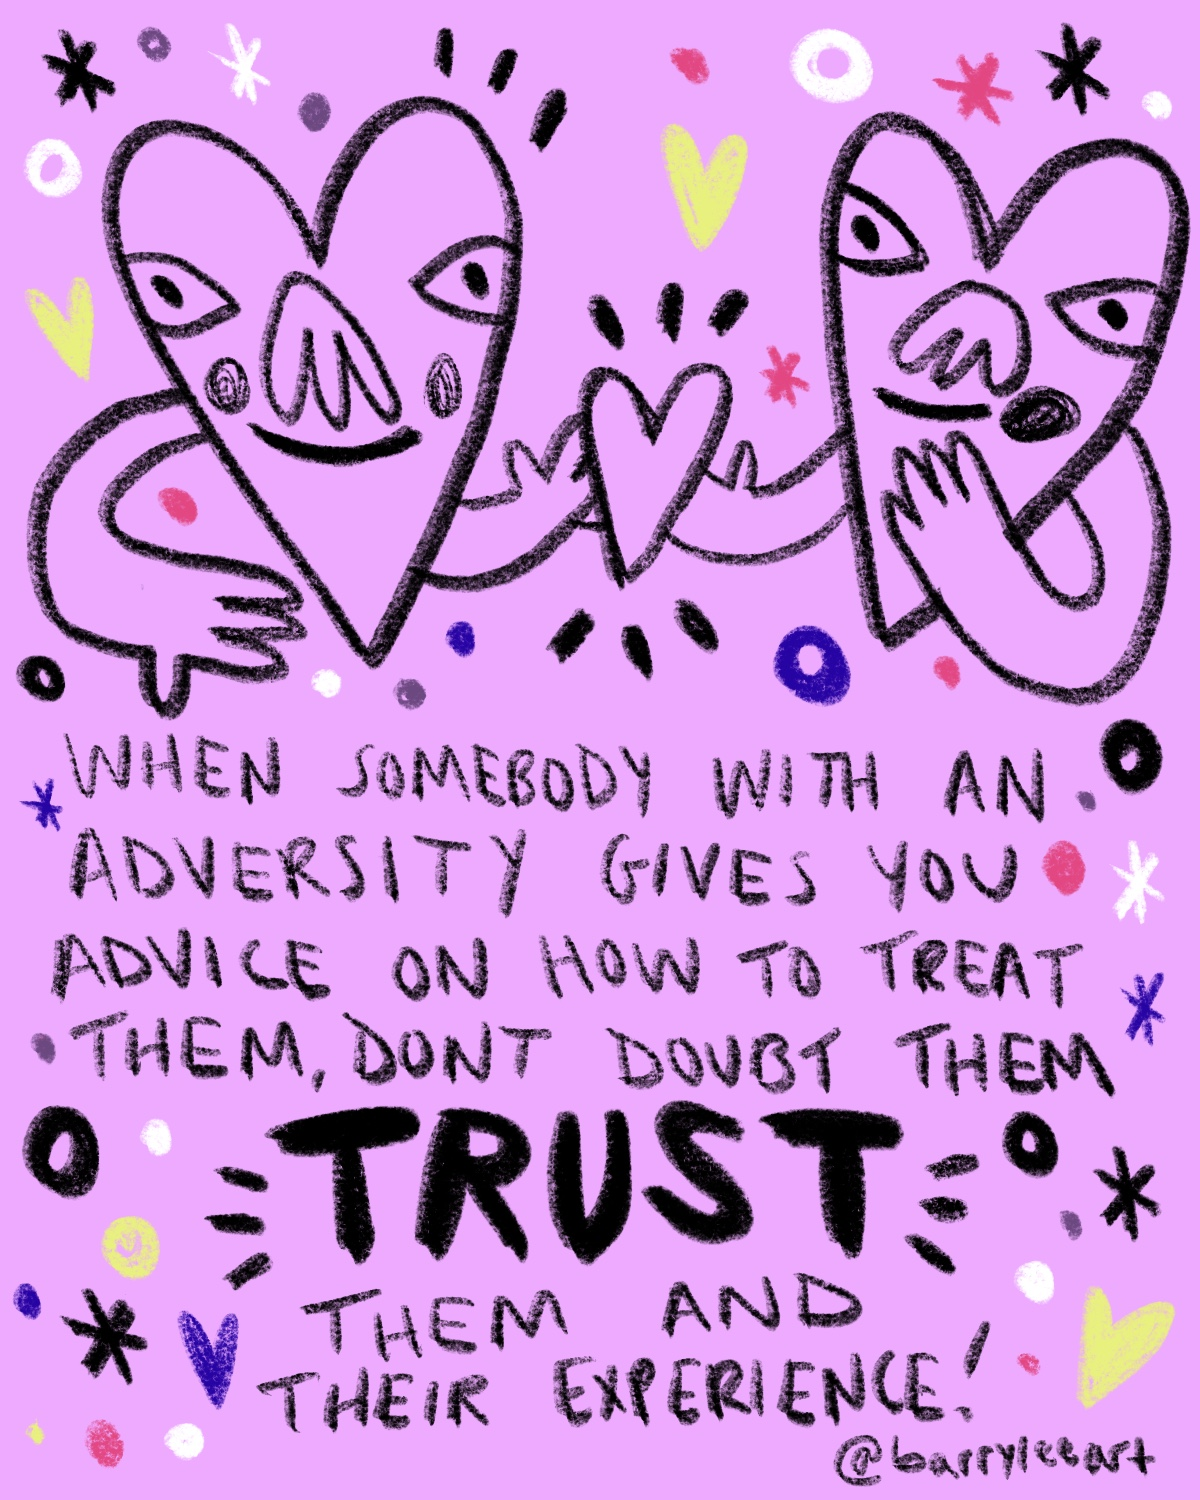 Trust - I've been vocal about my experiences with my disabilities and Queerness. With that vocalness comes those who doubt your experiences, take offense to how you stand up for yourself or people who don't admit their own biases. There are days I don't want to always advocate for myself. Adversity brings a sort of desire for advocacy in the way one navigates the world. If I didn't advocate for my own needs in regards to accessibility, I wouldn't be able to communicate and truly connect with others. At the end of the day, trusting one's story and advice is connecting with them. I talk often about it being a privilege to hear other's stories because it is a privilege living in a world that we can connect with others who live vastly different lives than us.